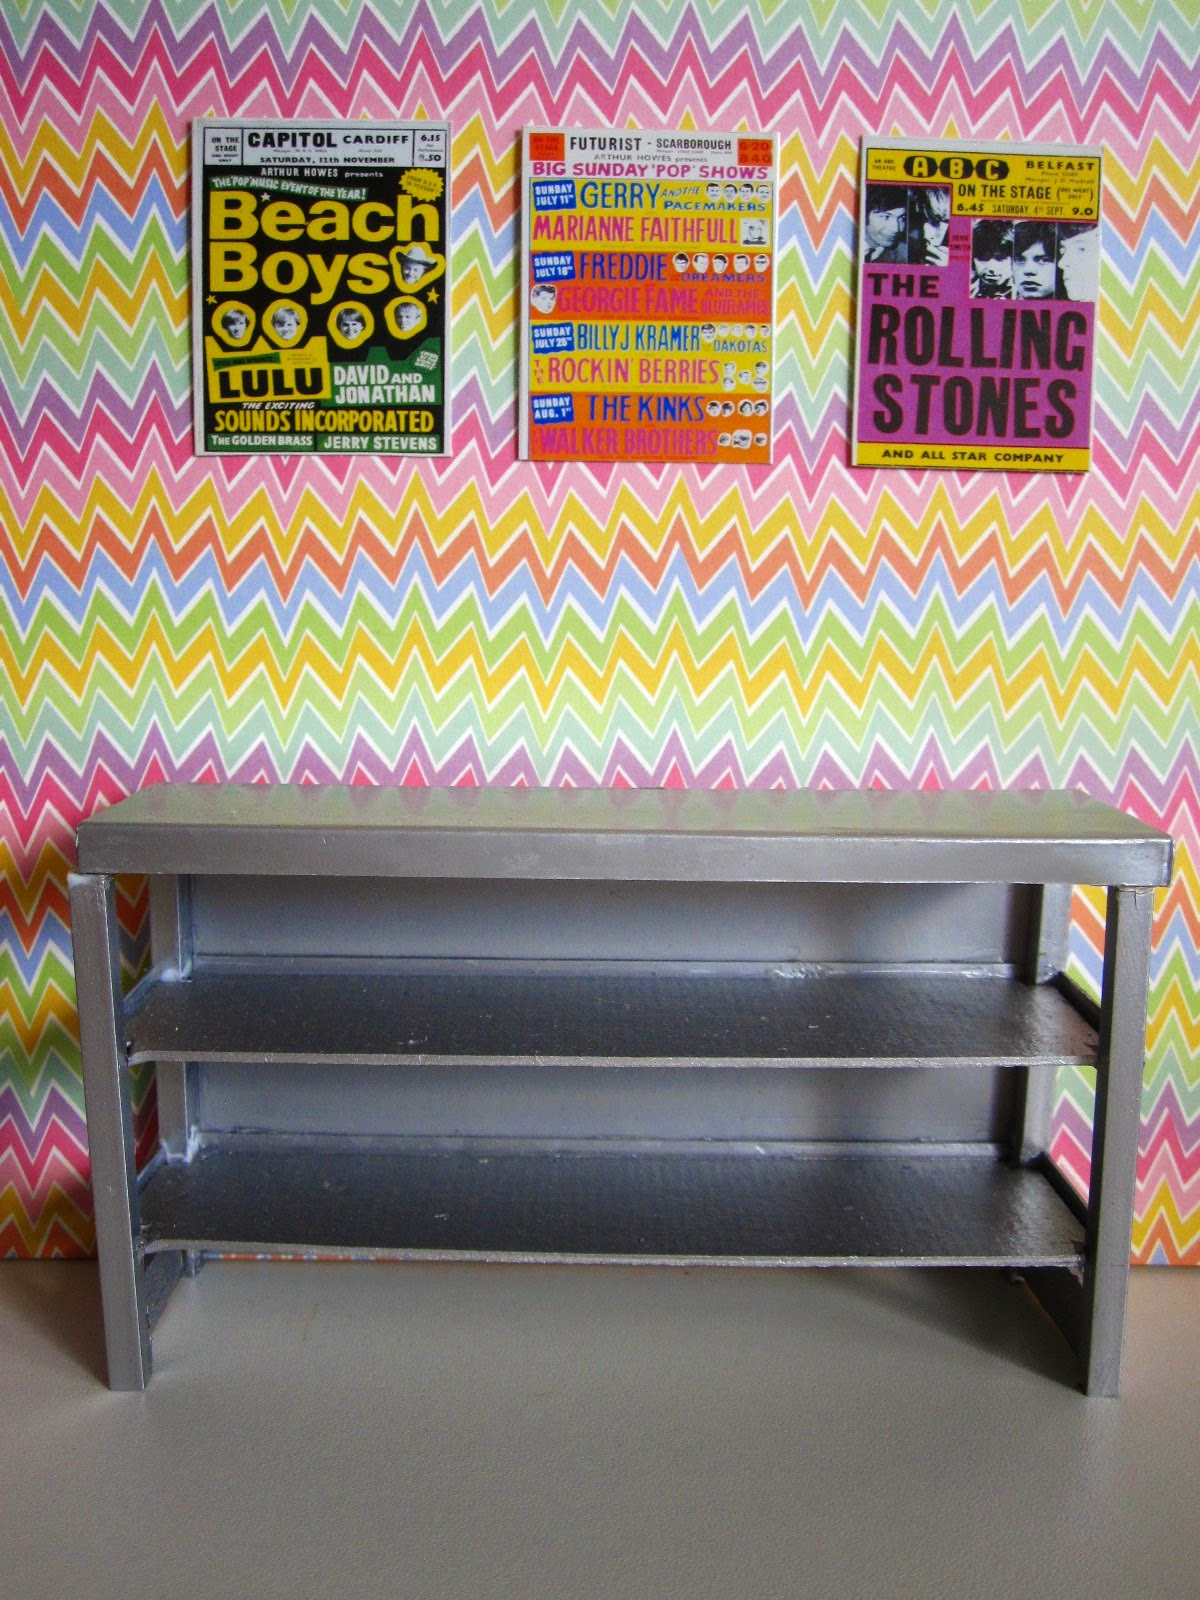 Selection of bright 1960s band posters arranged on a bright, zig zag-patterned wall. Underneath is a modern doll's house miniature industrial grey storage bench.